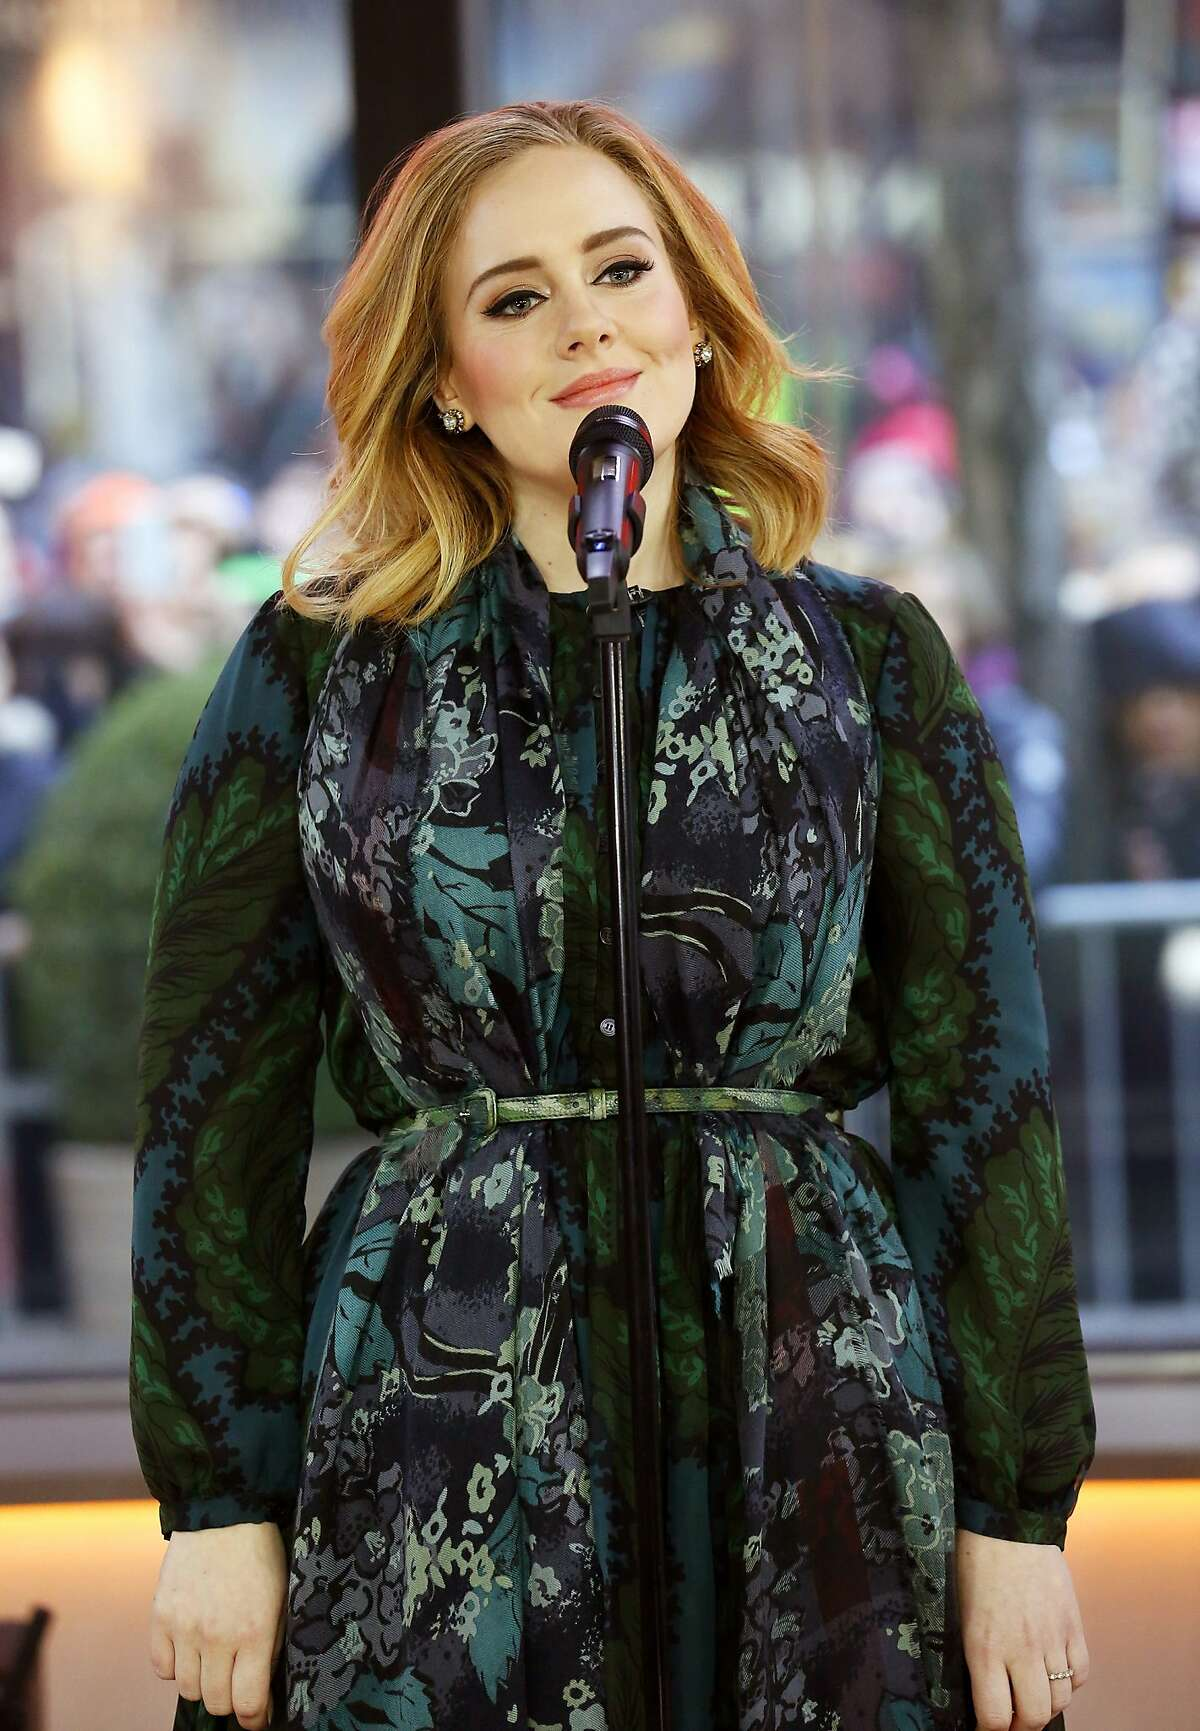 """In this image released by NBC, Adele performs on the """"Today"""" show on Wednesday, Nov. 25, 2015, to promote her latest release, """"25."""" (Heidi Gutman/NBC via AP)"""